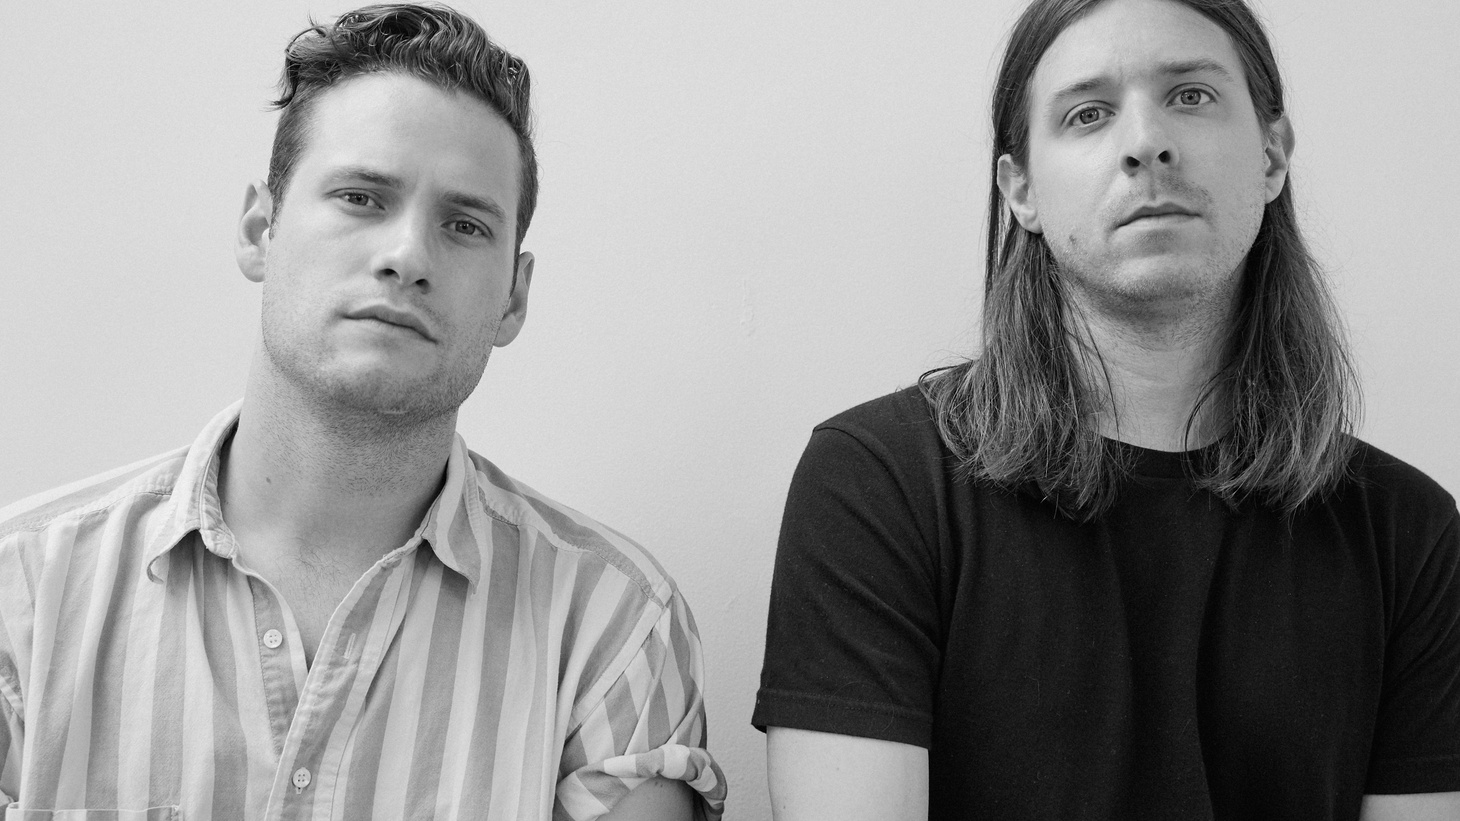 "Haulm are a Brooklyn duo, made up of producer Reed Kackleysinger and vocalist JT Norton who specialize in a moody, downtempo electronic sound. What began with some casual vocal ""jam sessions"" took on a life of its own leading us to Haulm."